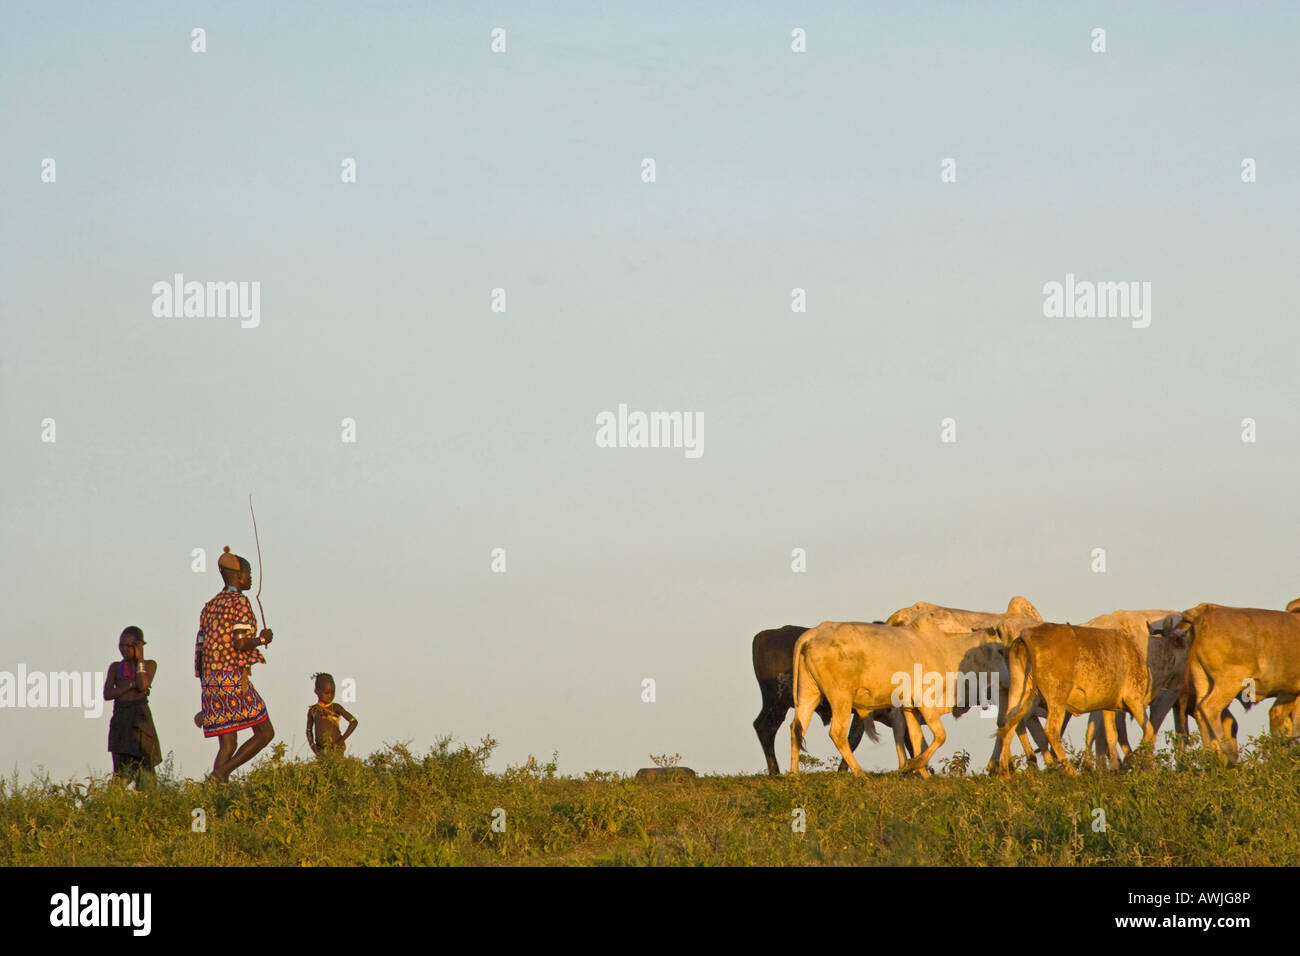 Hamer Herdsman and his Charges at Day's End, Dimeka - Stock Image